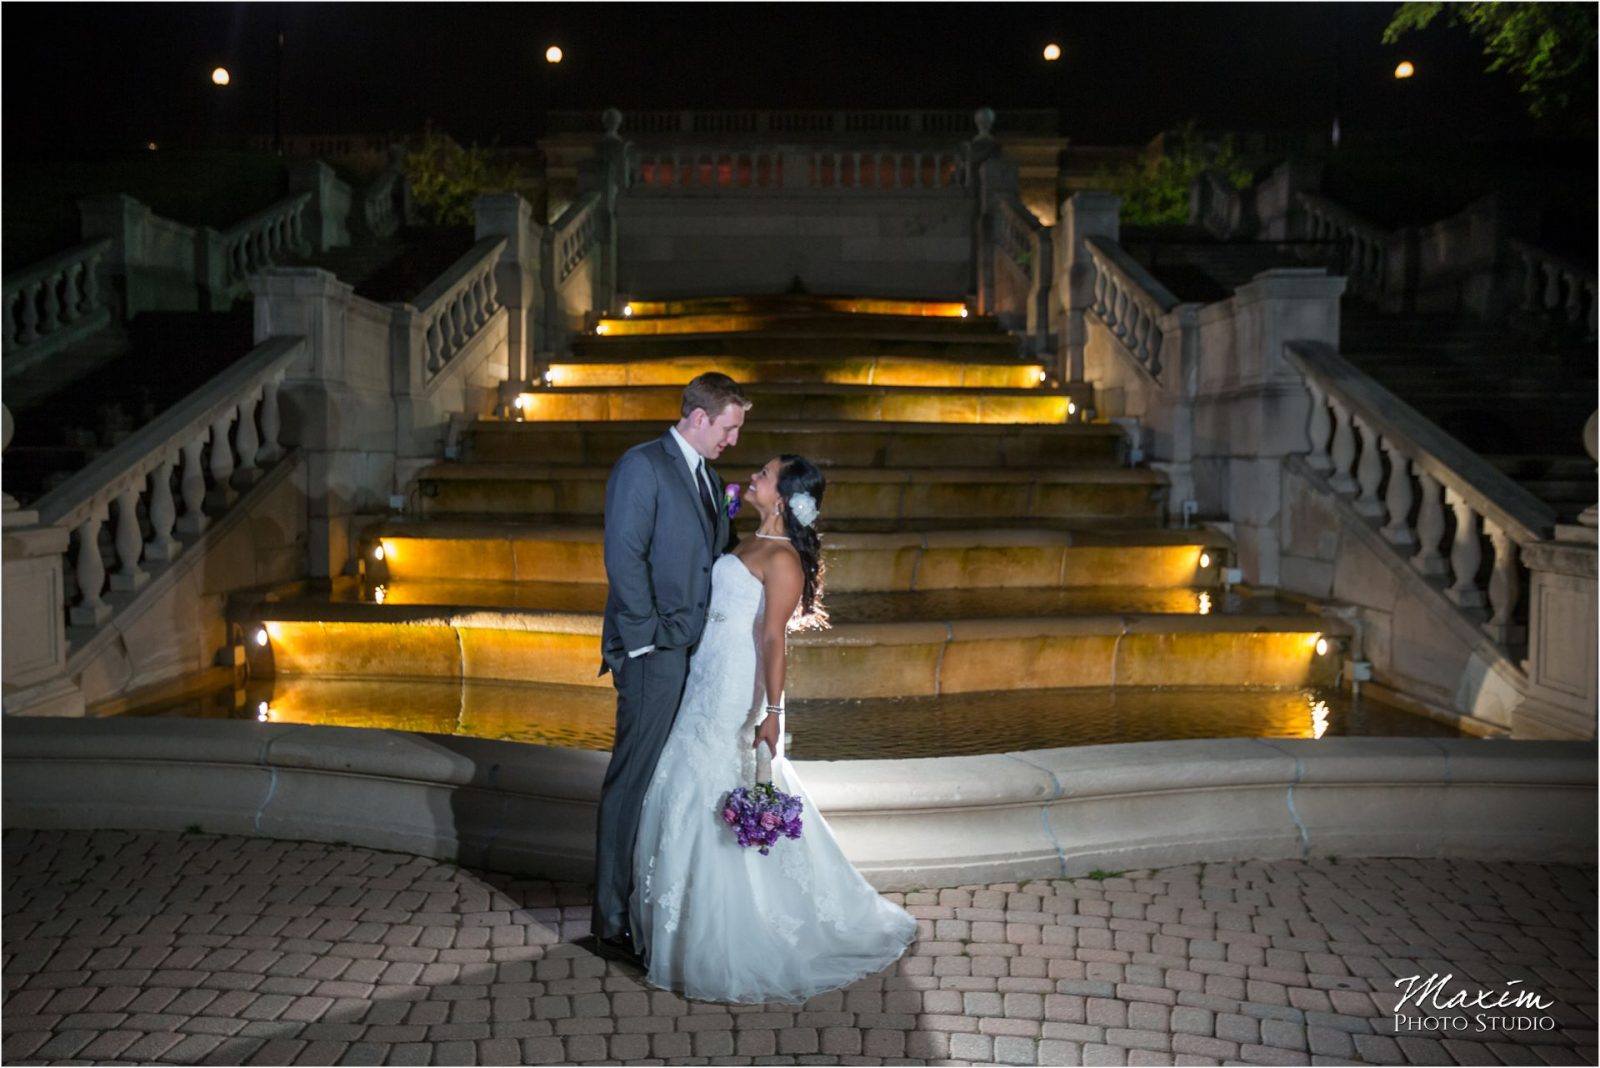 Ault Park Fountain Cincinnati Wedding Reception Bride Groom